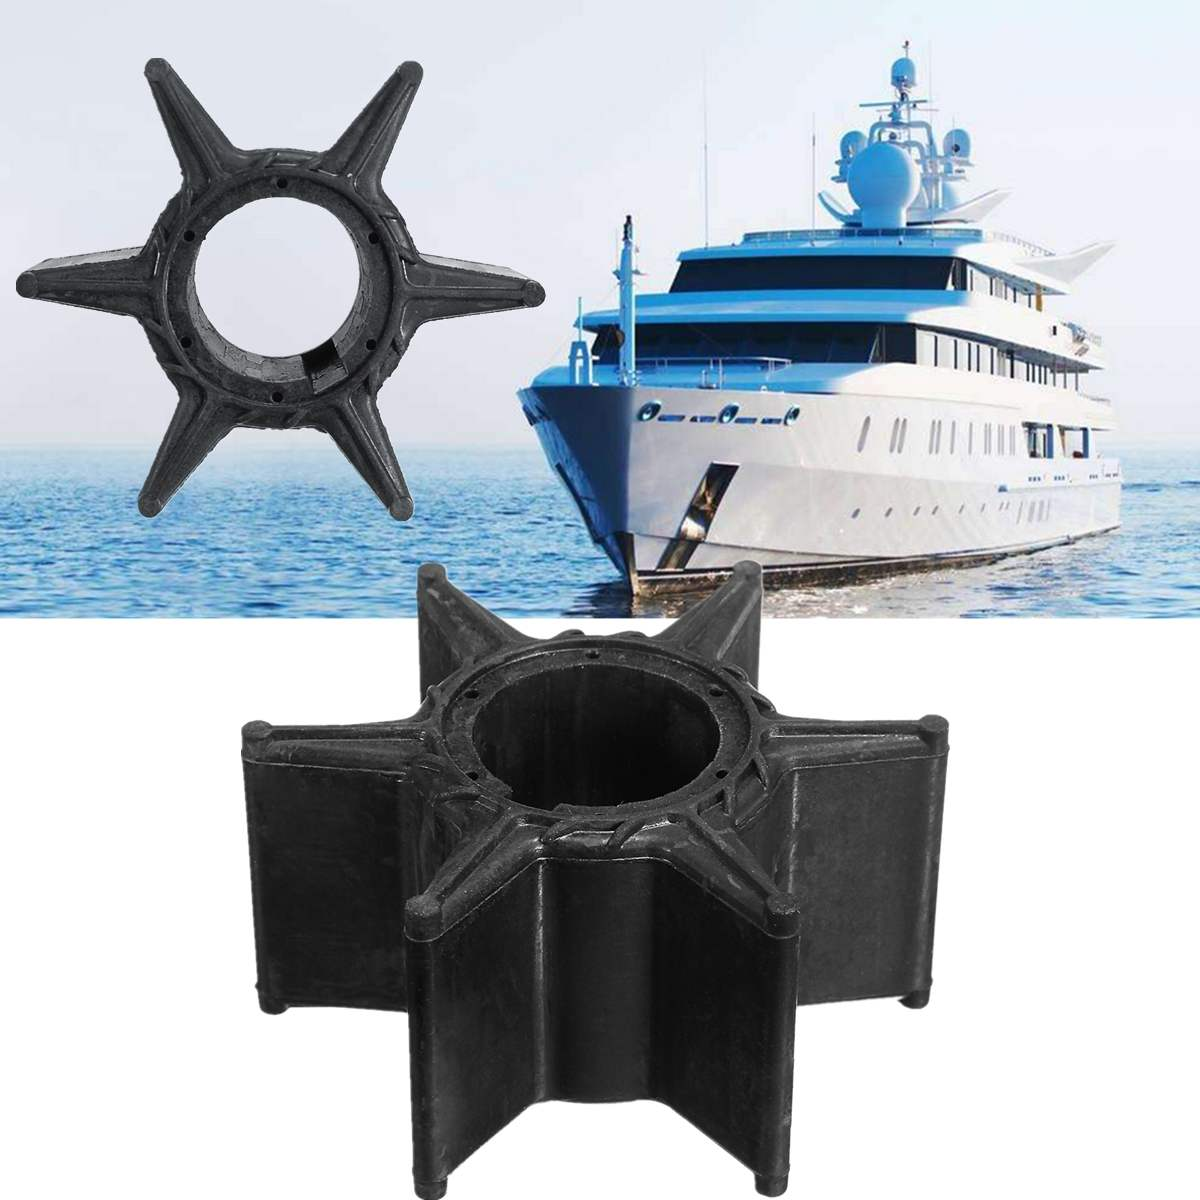 Water Pump Impeller Black Rubber For Yamaha 70HP 75HP 85HP 90HP Outboard 688-44352-03 18-3070 6 Blades Boat Parts & Accessories